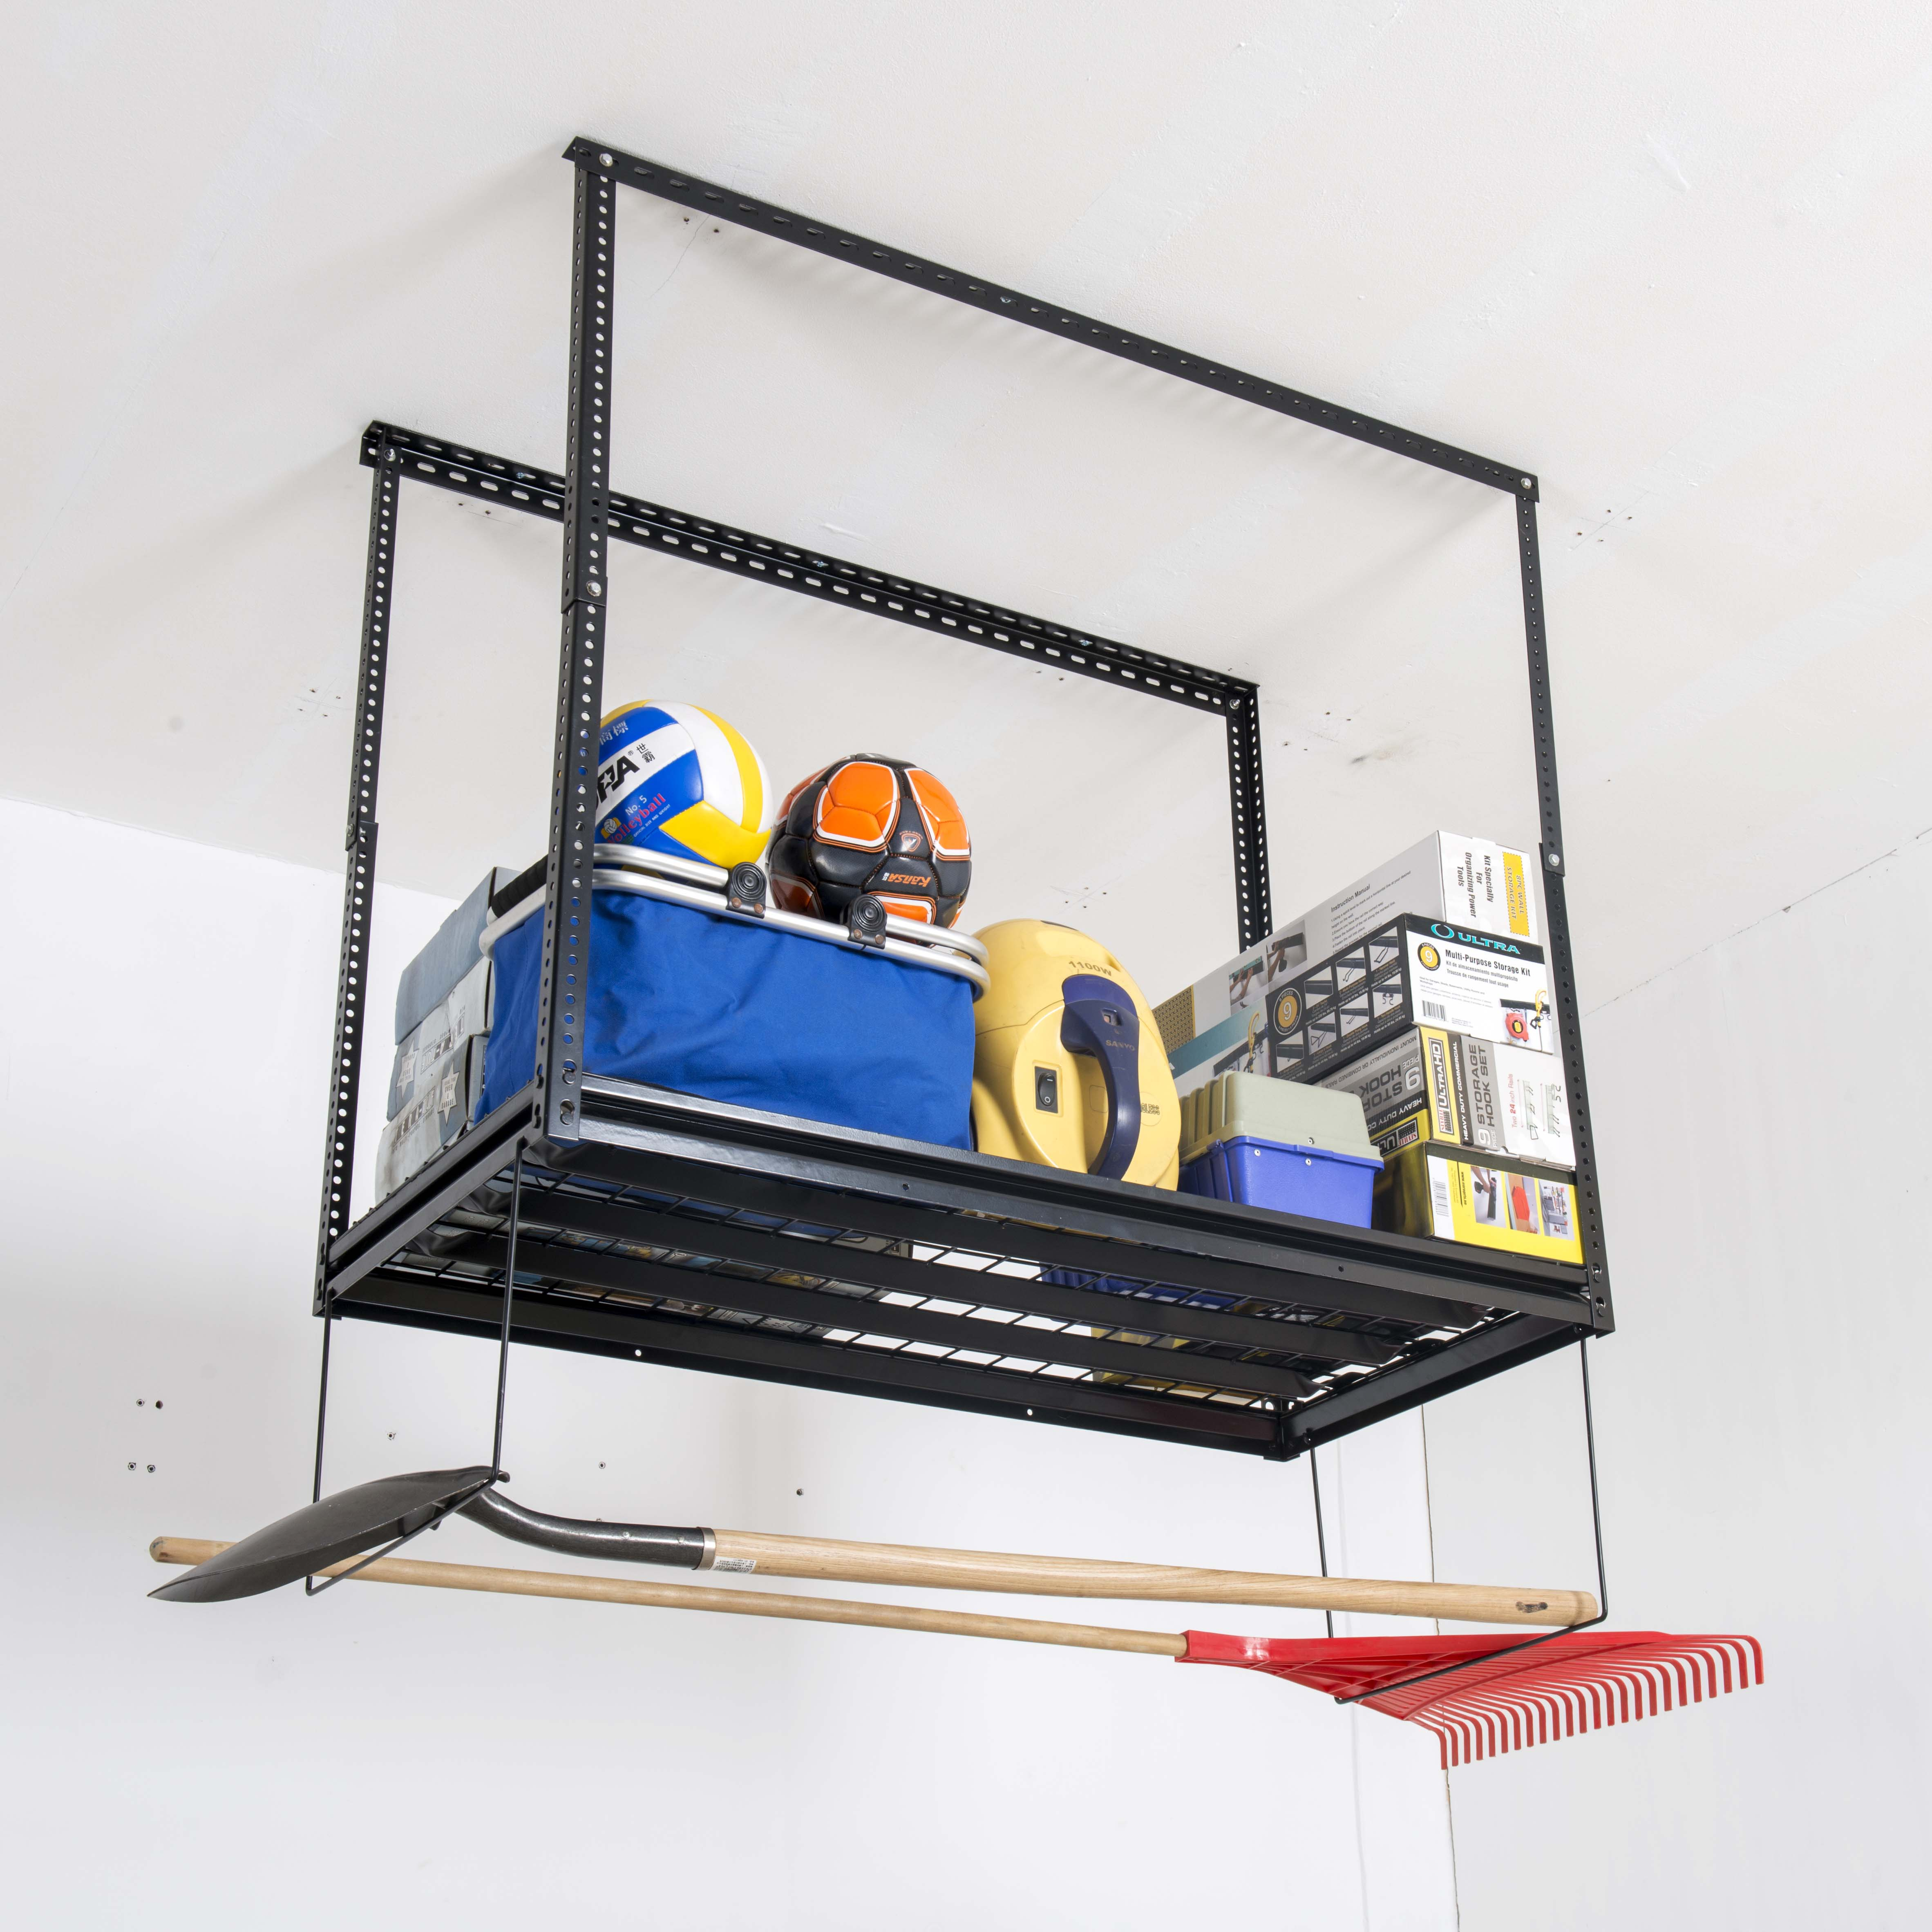 High Quality Custom Ceiling Storage Racks Garage Storage Ceiling Rack View Diy Garage Ceiling Storage T Nine Tools Product Details From Quzhou T Nine Tools Co Ltd On Alibaba Com